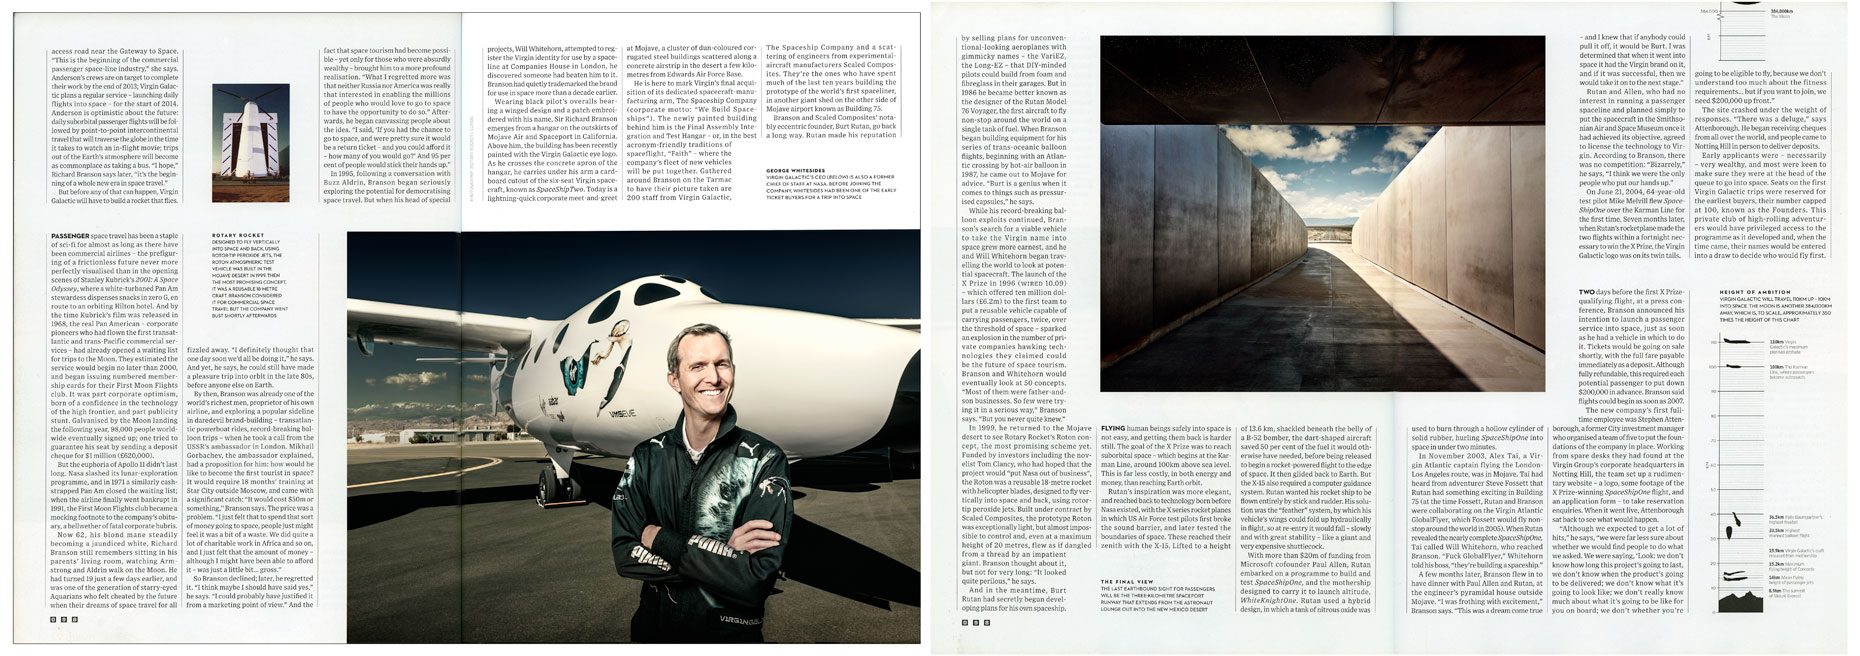 WIRED UK: BRANSON GOES GALACTIC: George Whitesides. March 2013 issue - SPREAD 3 and 4